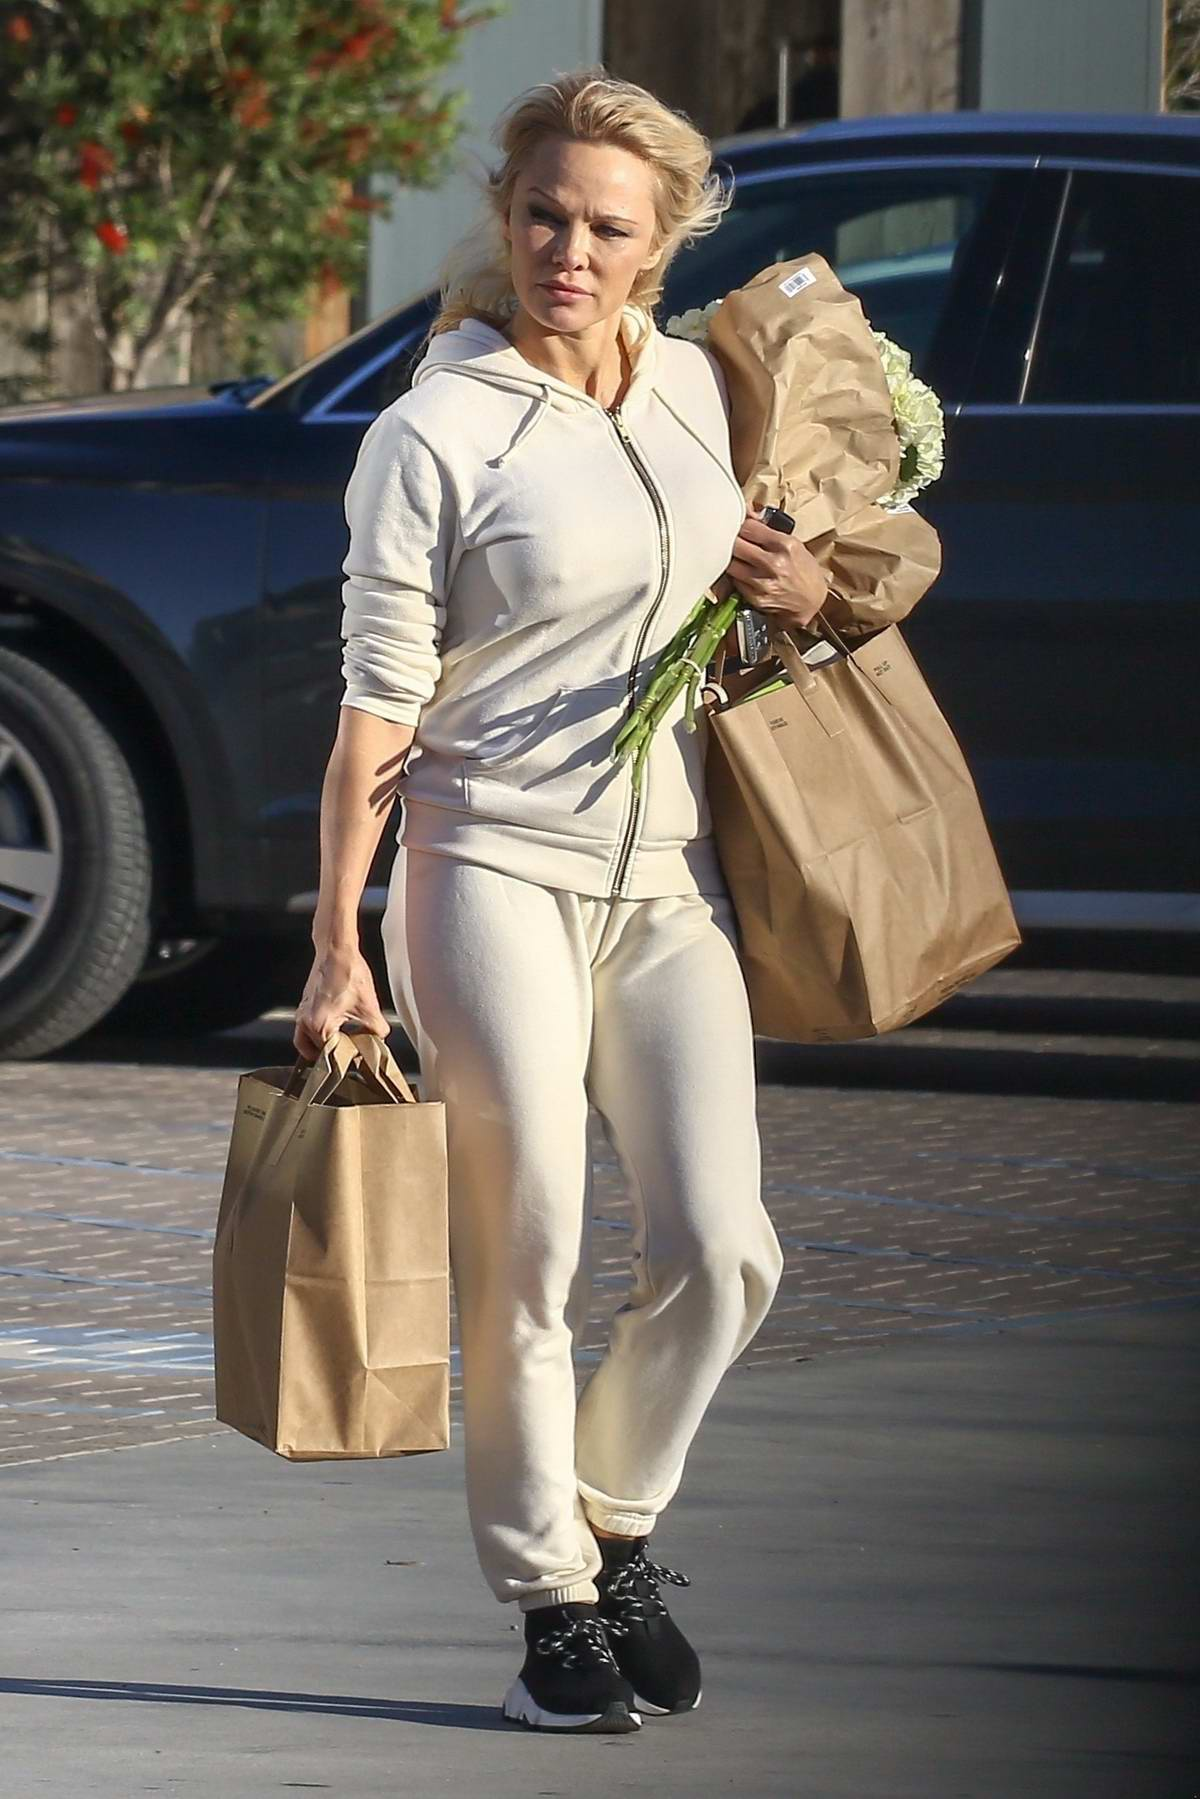 Pamela Anderson wears her workout sweats to shop for groceries at Vintage Grocers market in Malibu, California